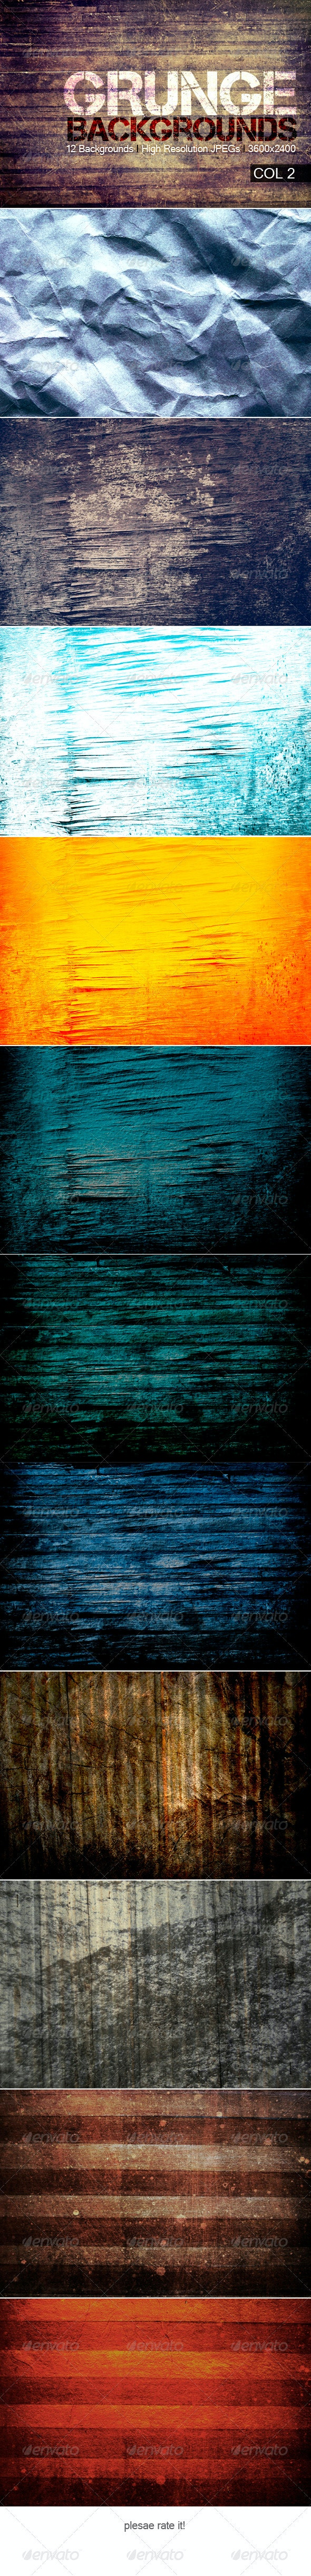 Grunge Backgrounds Col 2 - Backgrounds Graphics